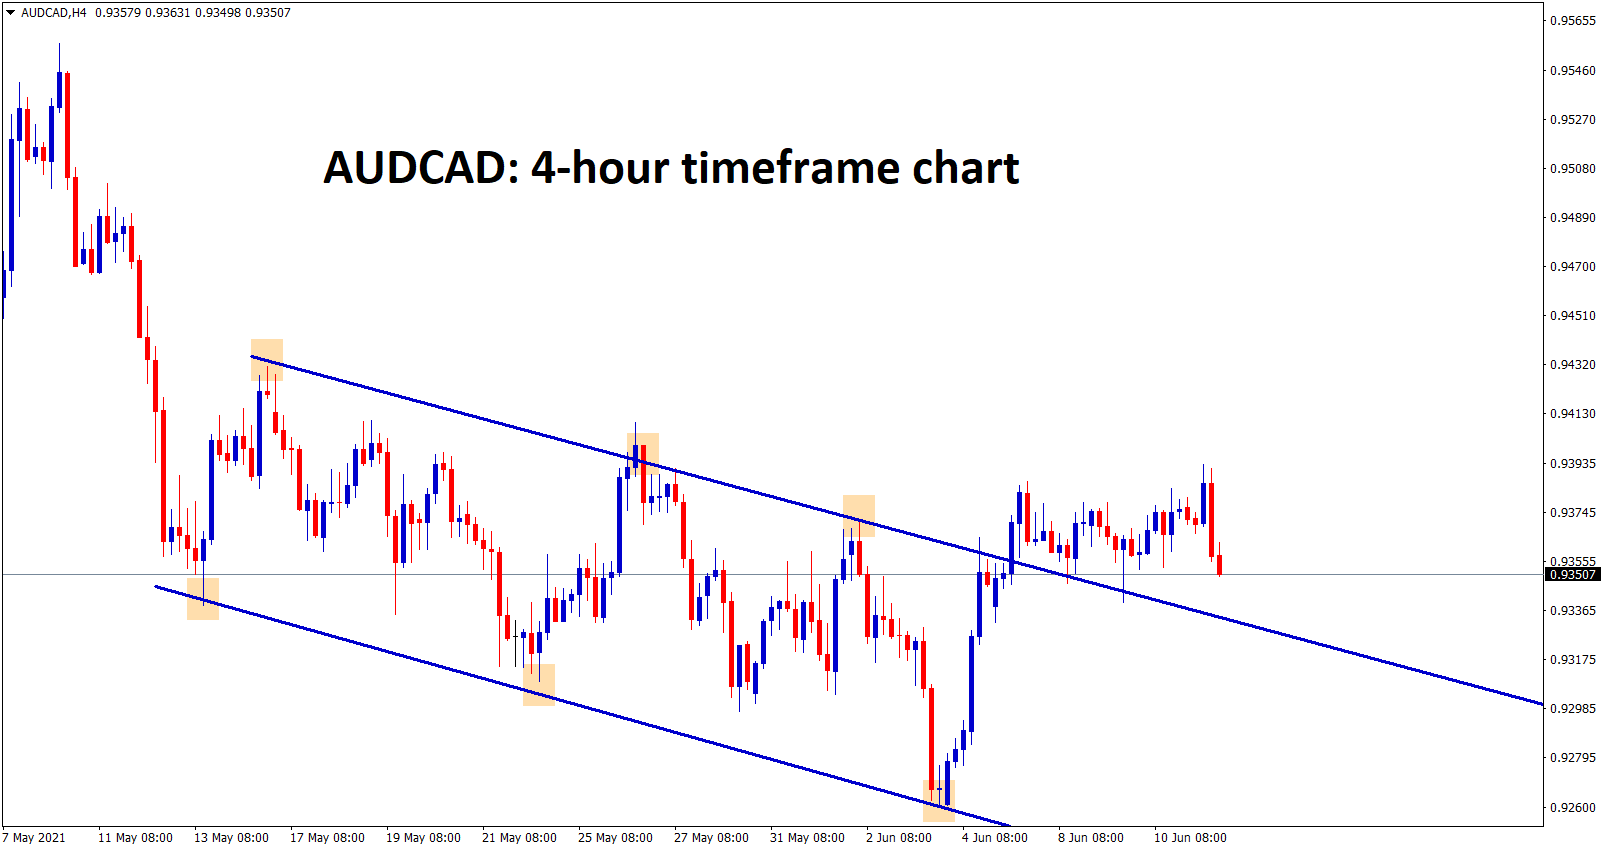 AUDCAD is consolidating after the breakout of the descending channel